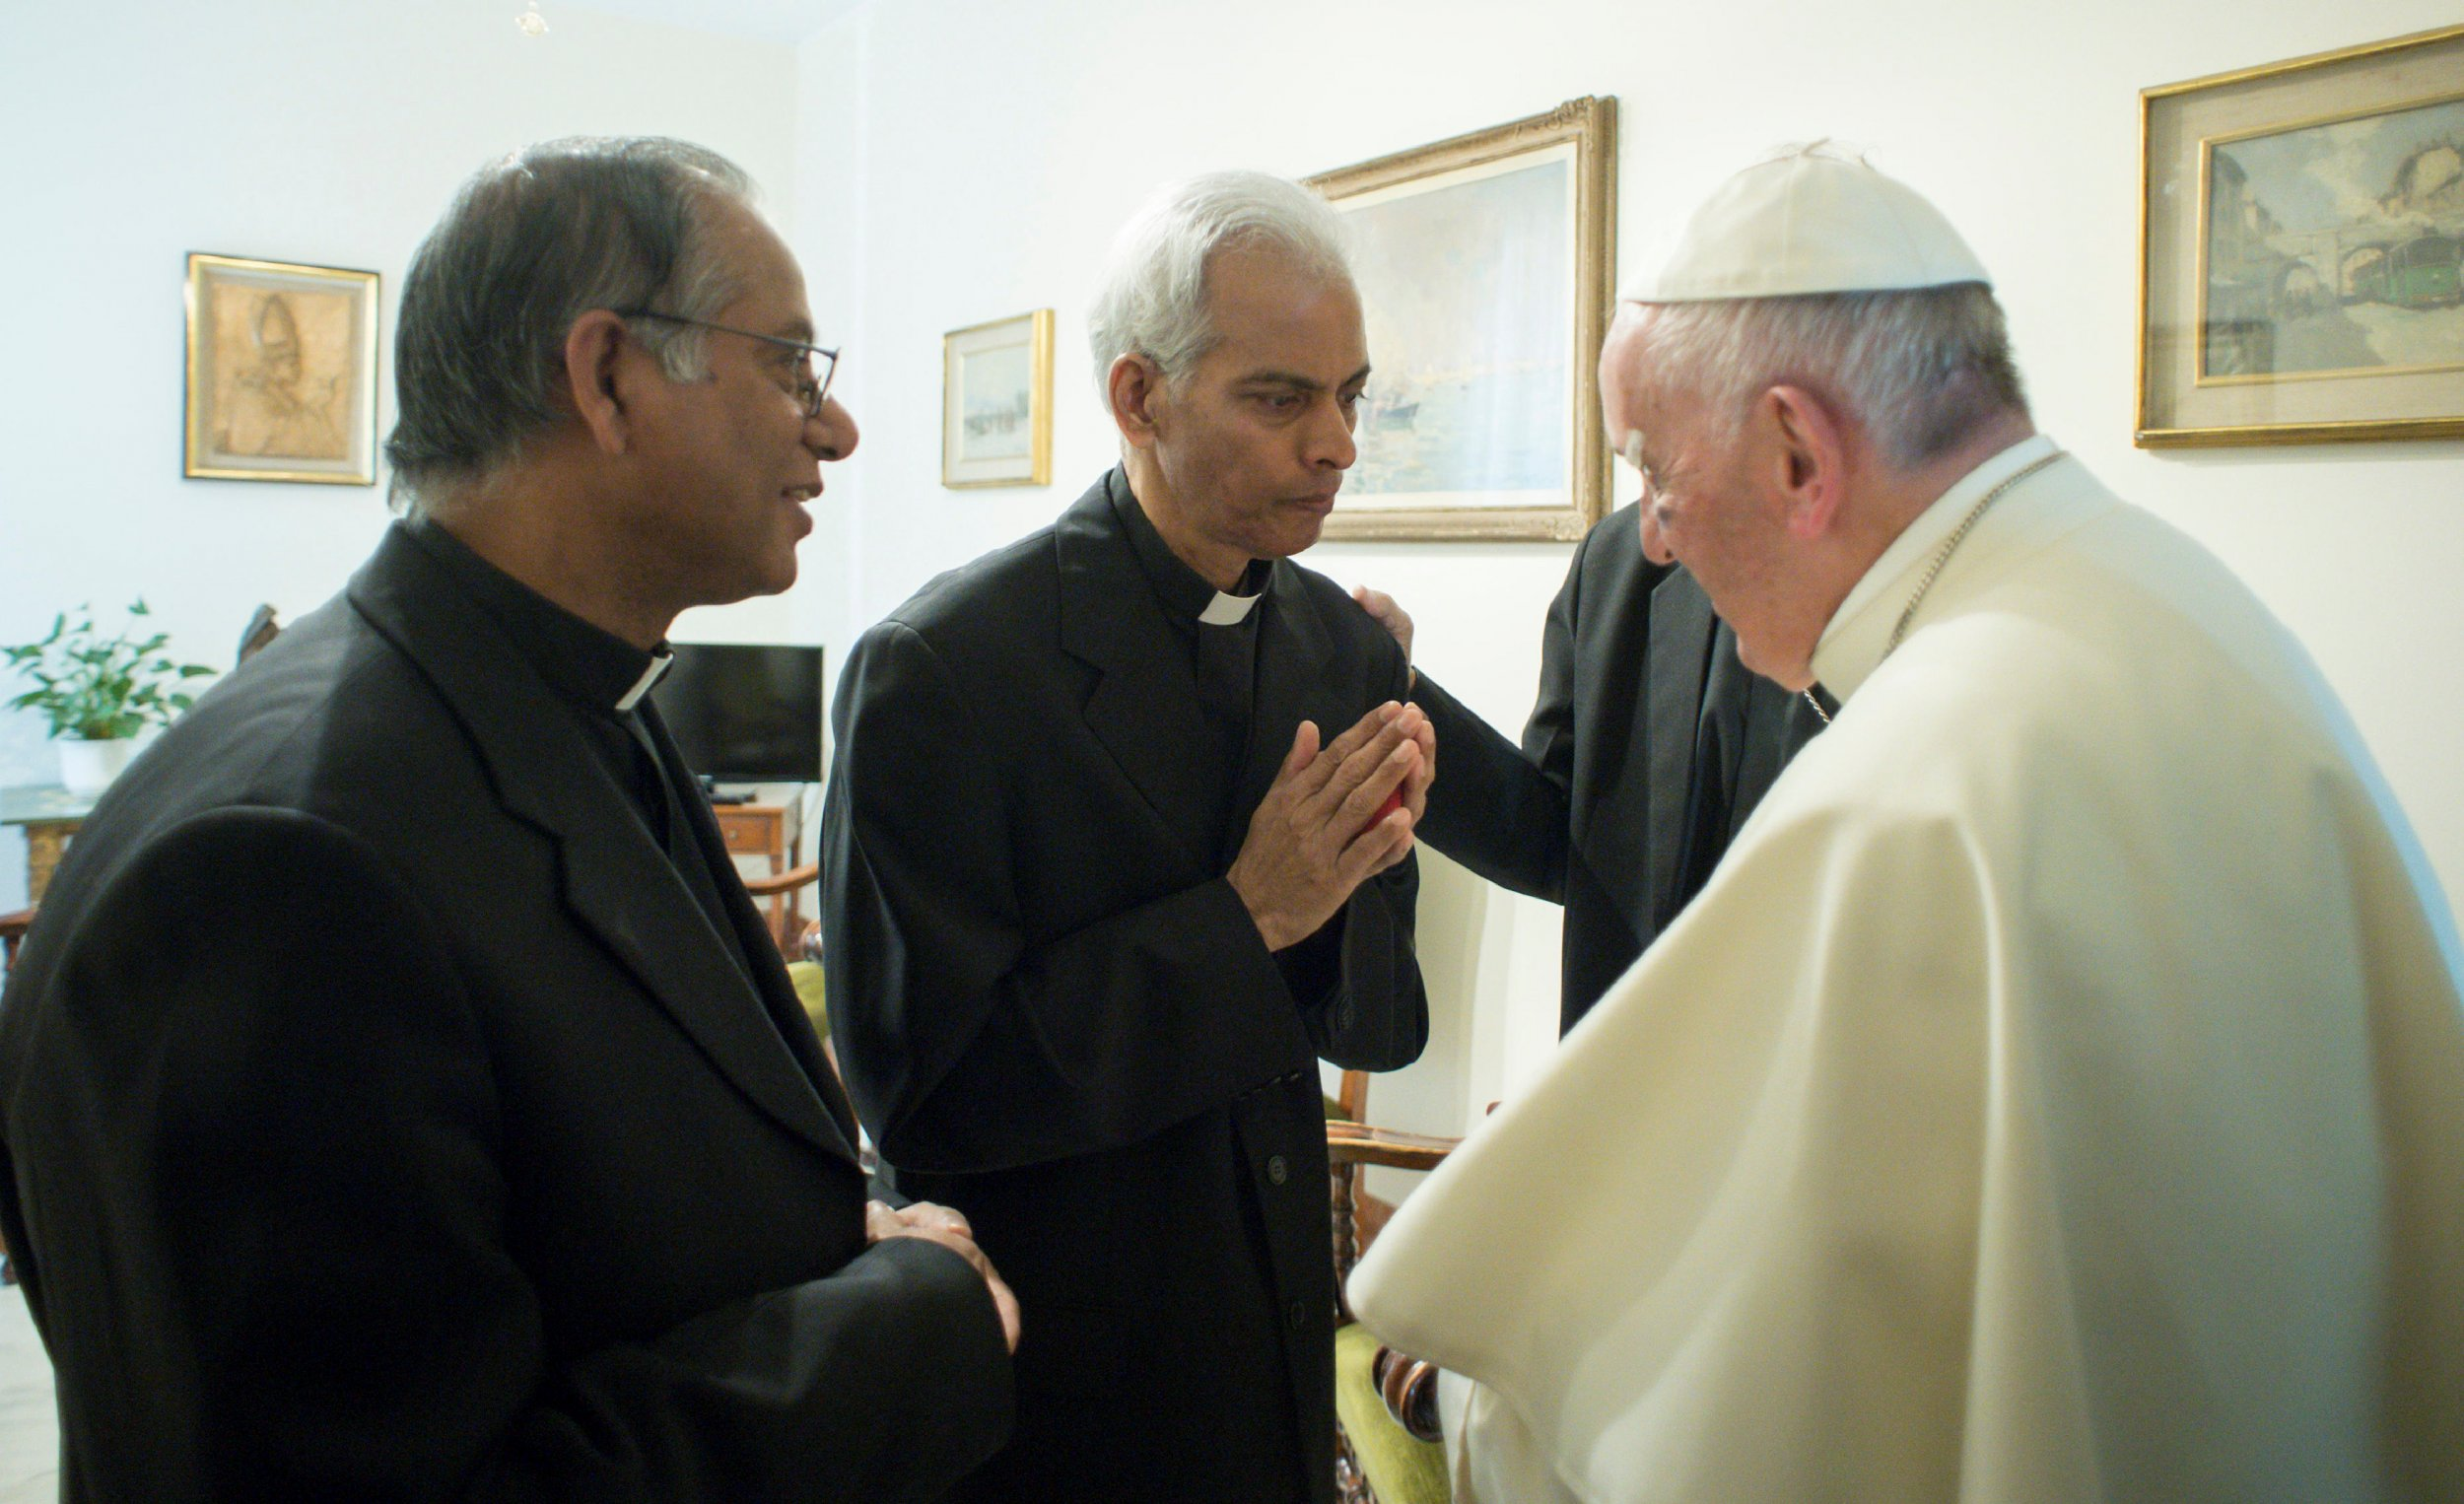 09_14_India_Priest_Pope